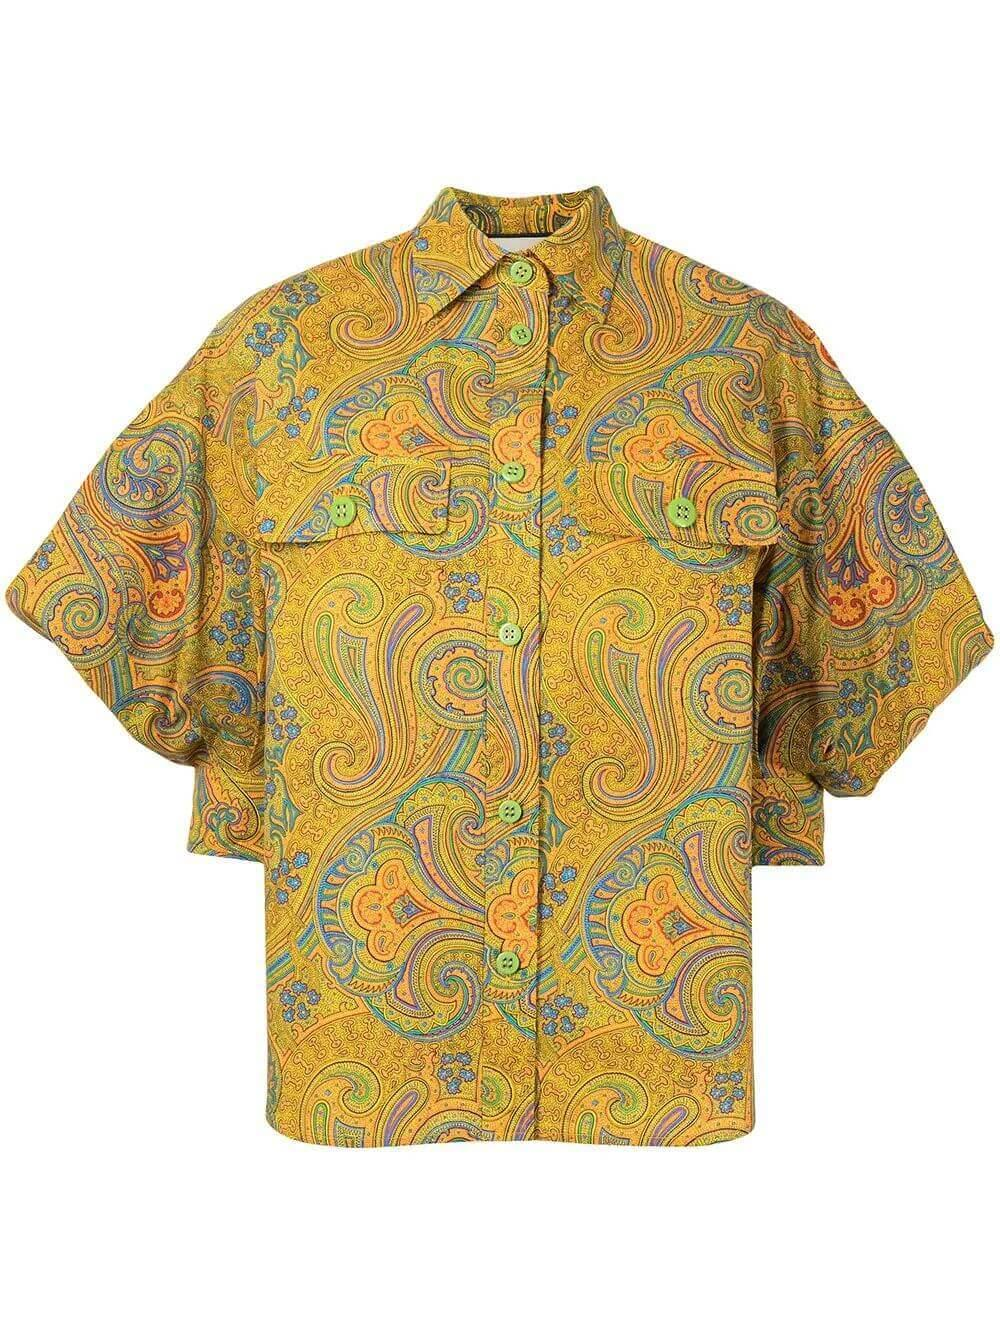 Berwyn Paisley Buttondown Top Item # A1210111-6983